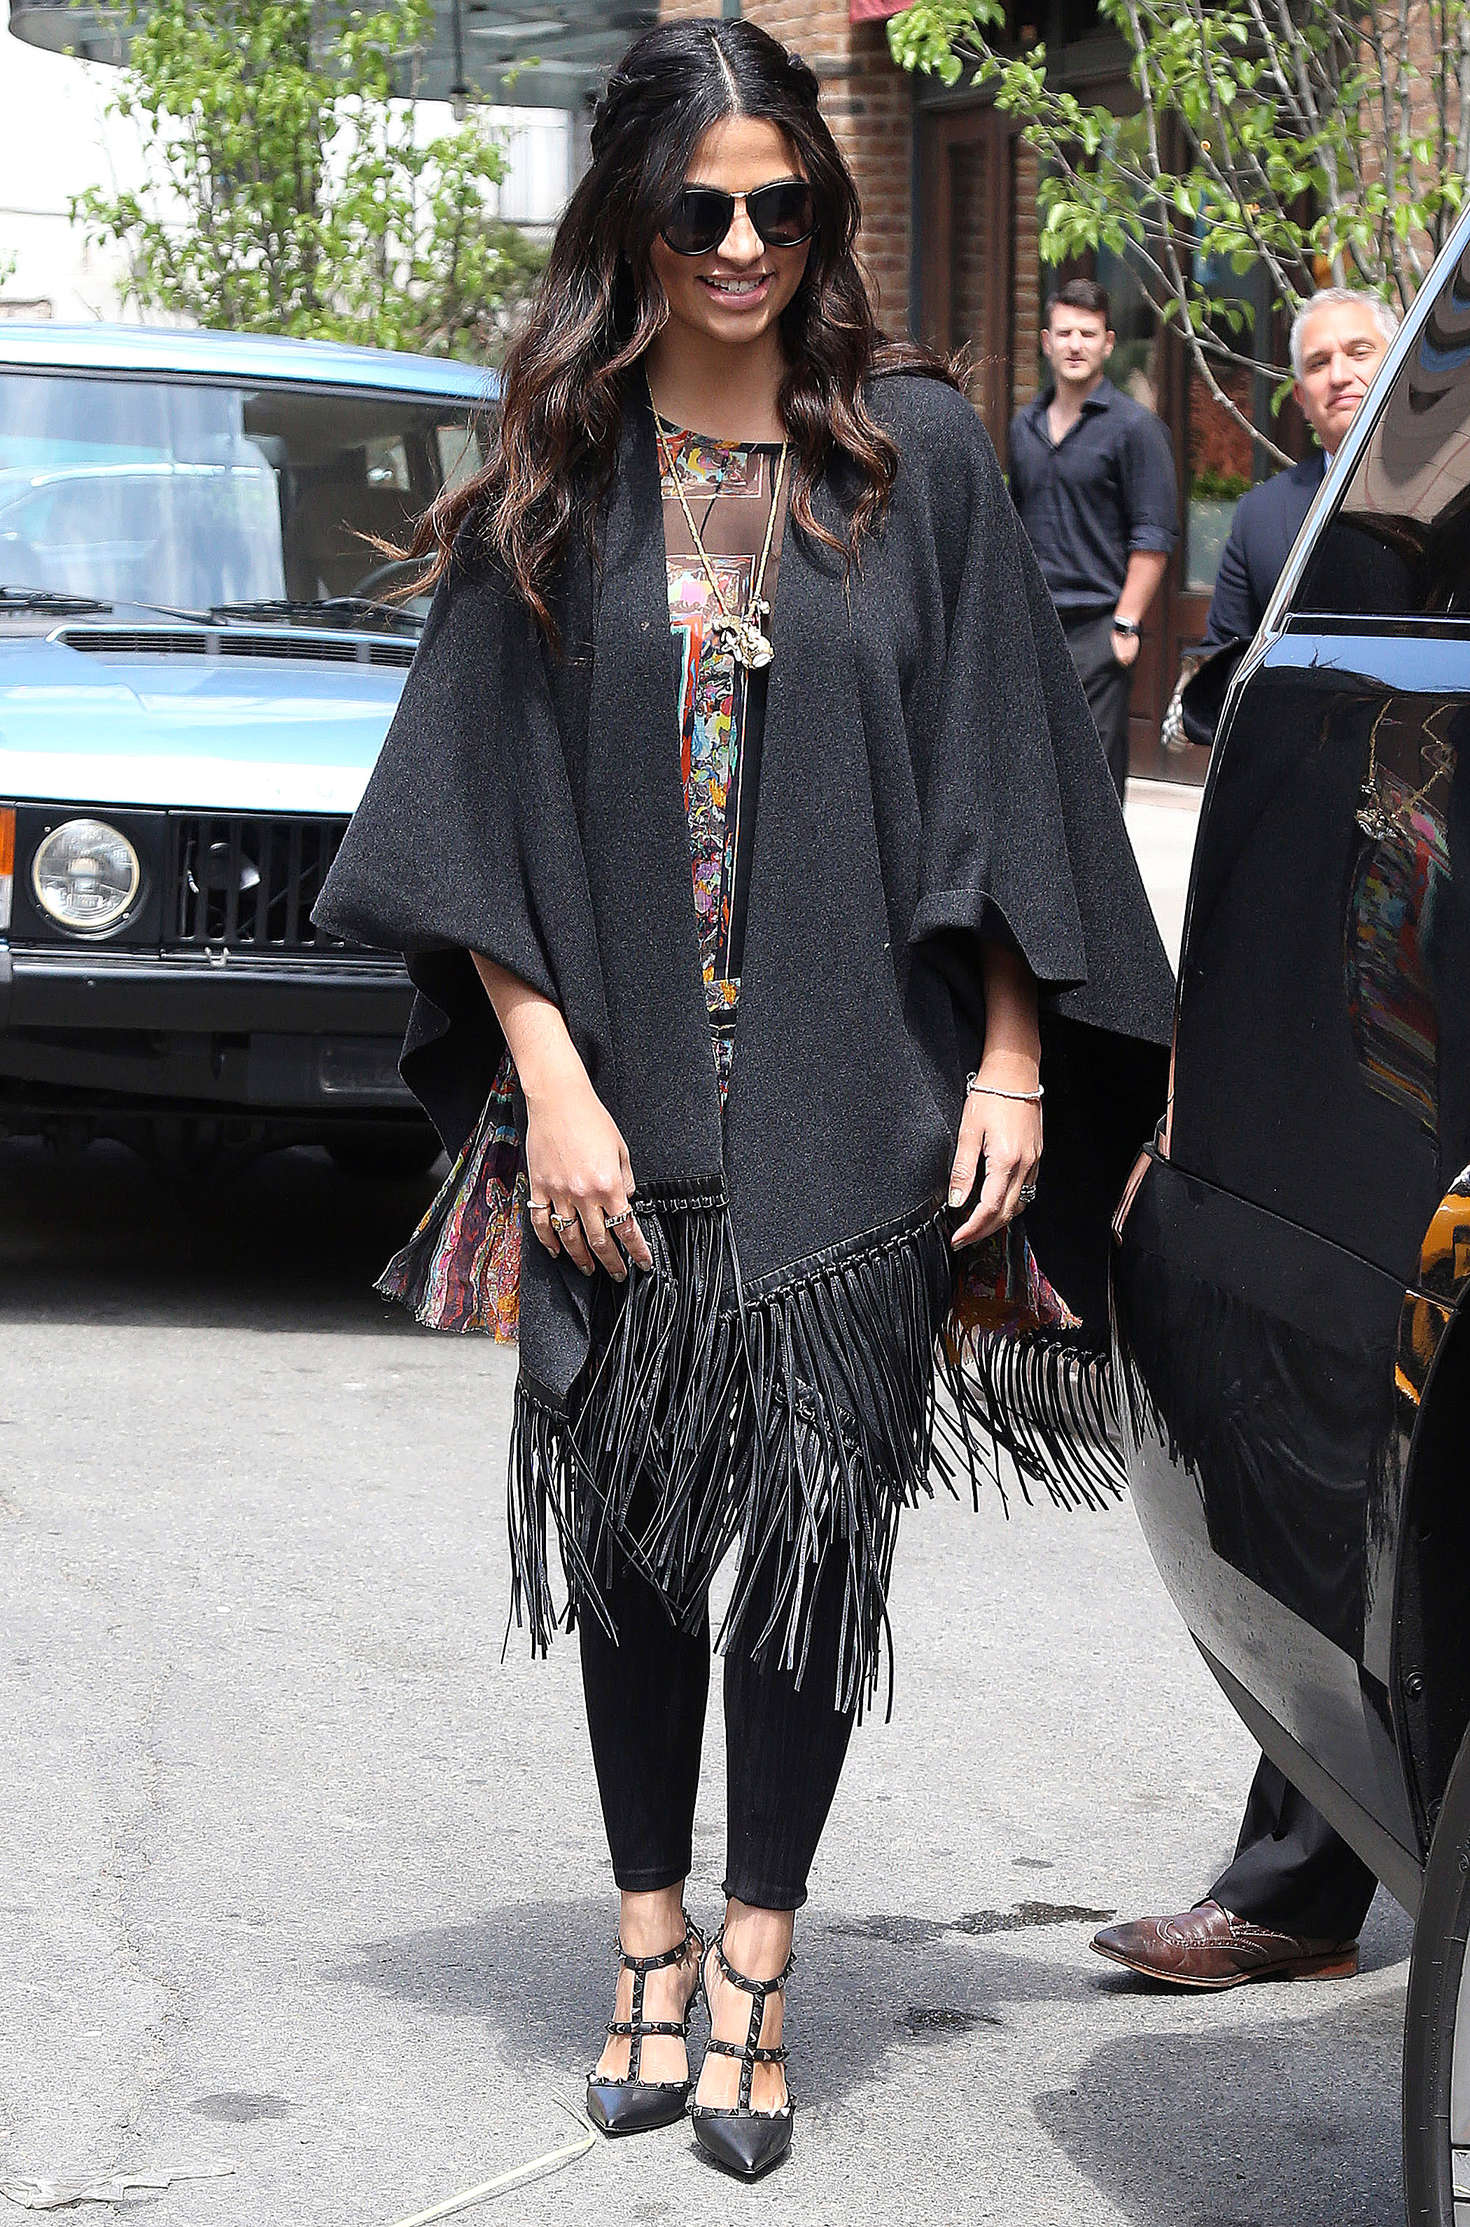 Camila Alves 2016 : Camila Alves out and about in New York City -01